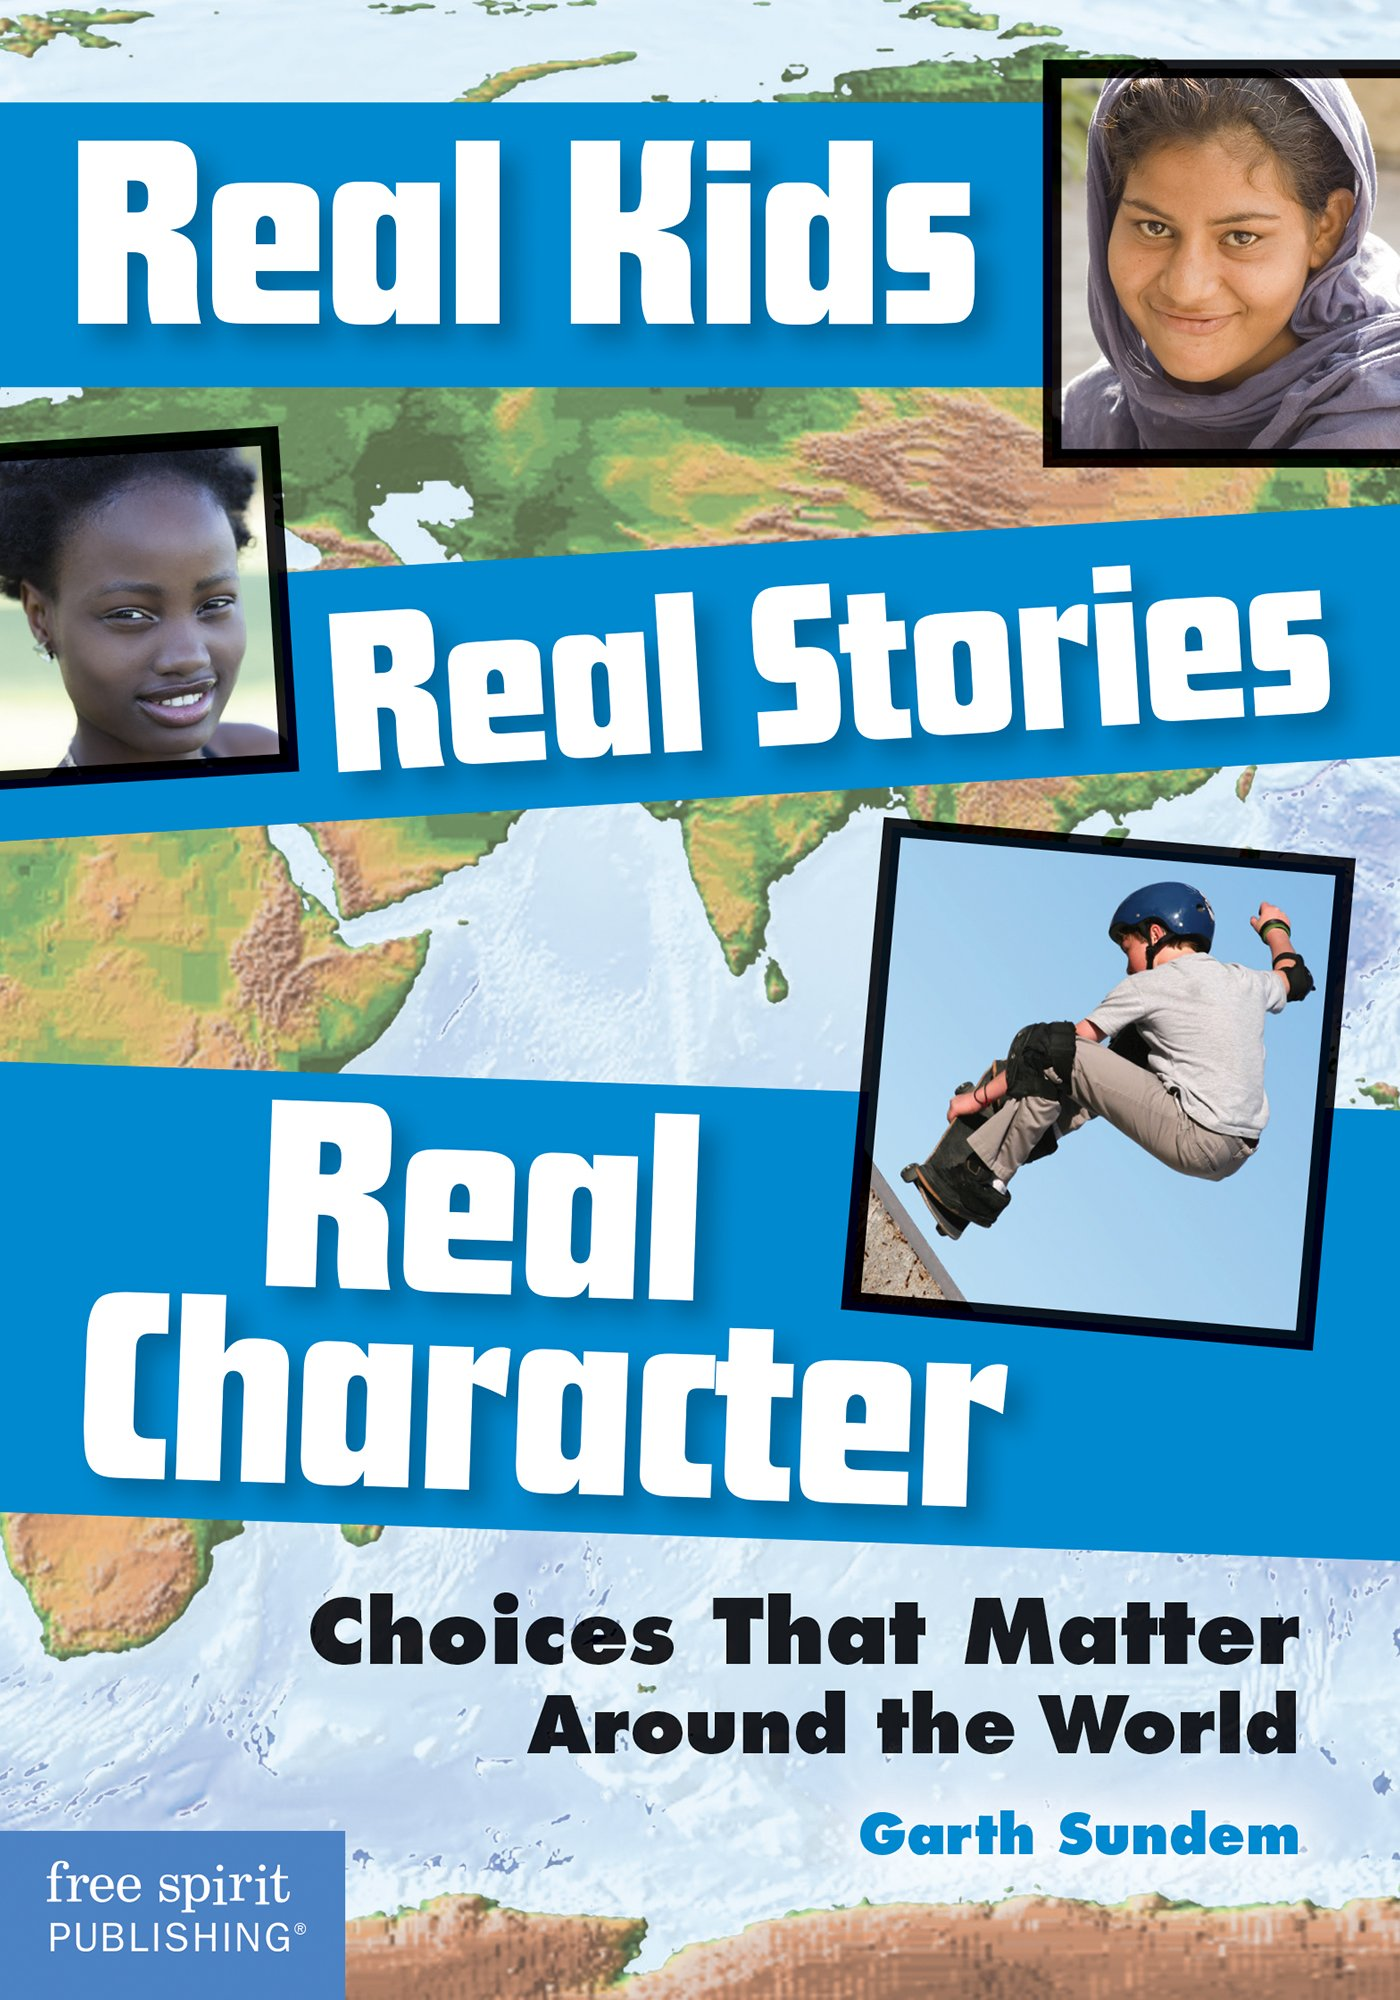 Real Kids, Real Stories, Real Character: Choices That Matter Around the World: Garth Sundem: 9781631980268: Amazon.com: Books